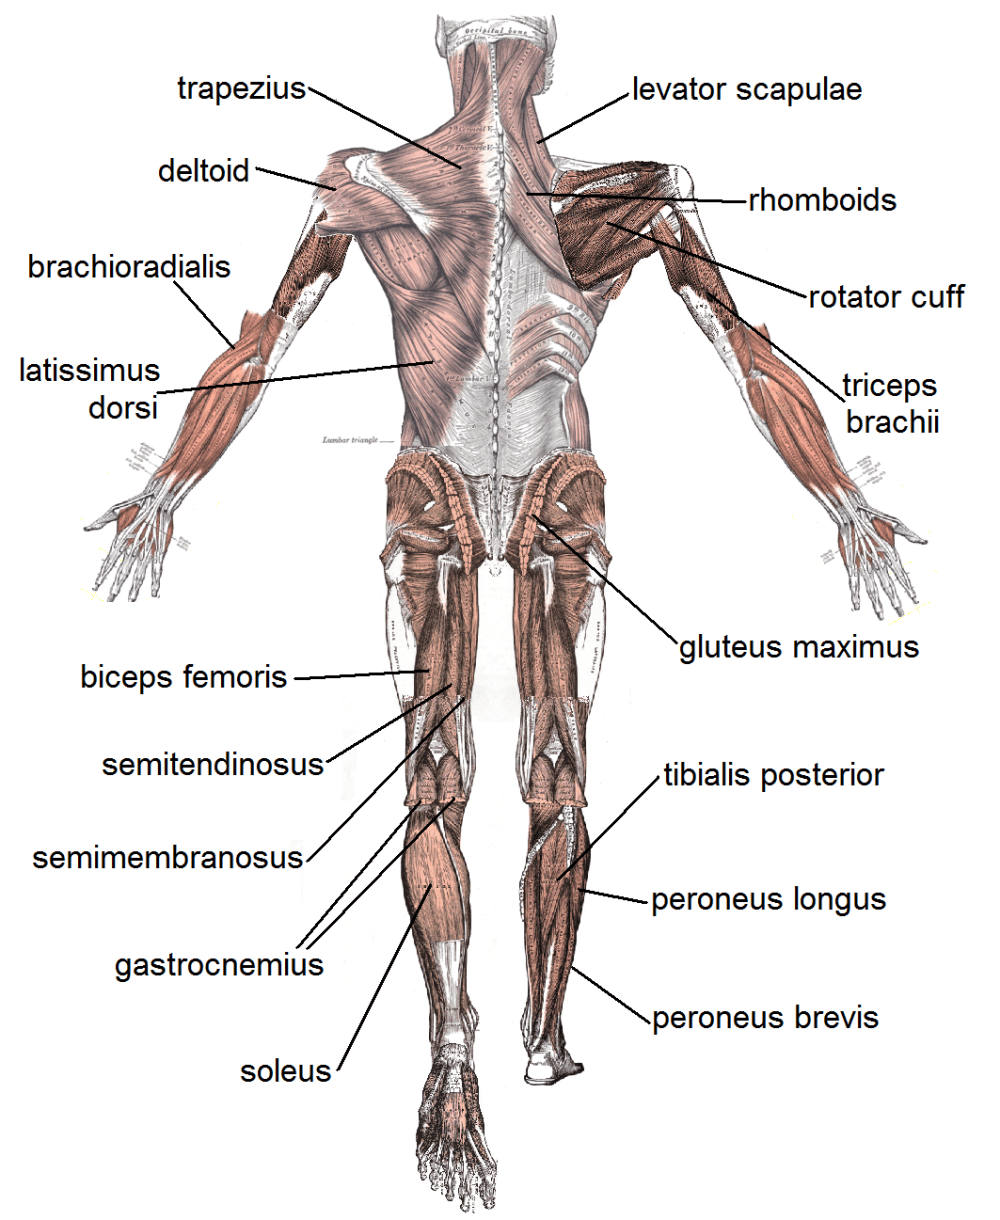 medium resolution of pictures of workout exercises upper body